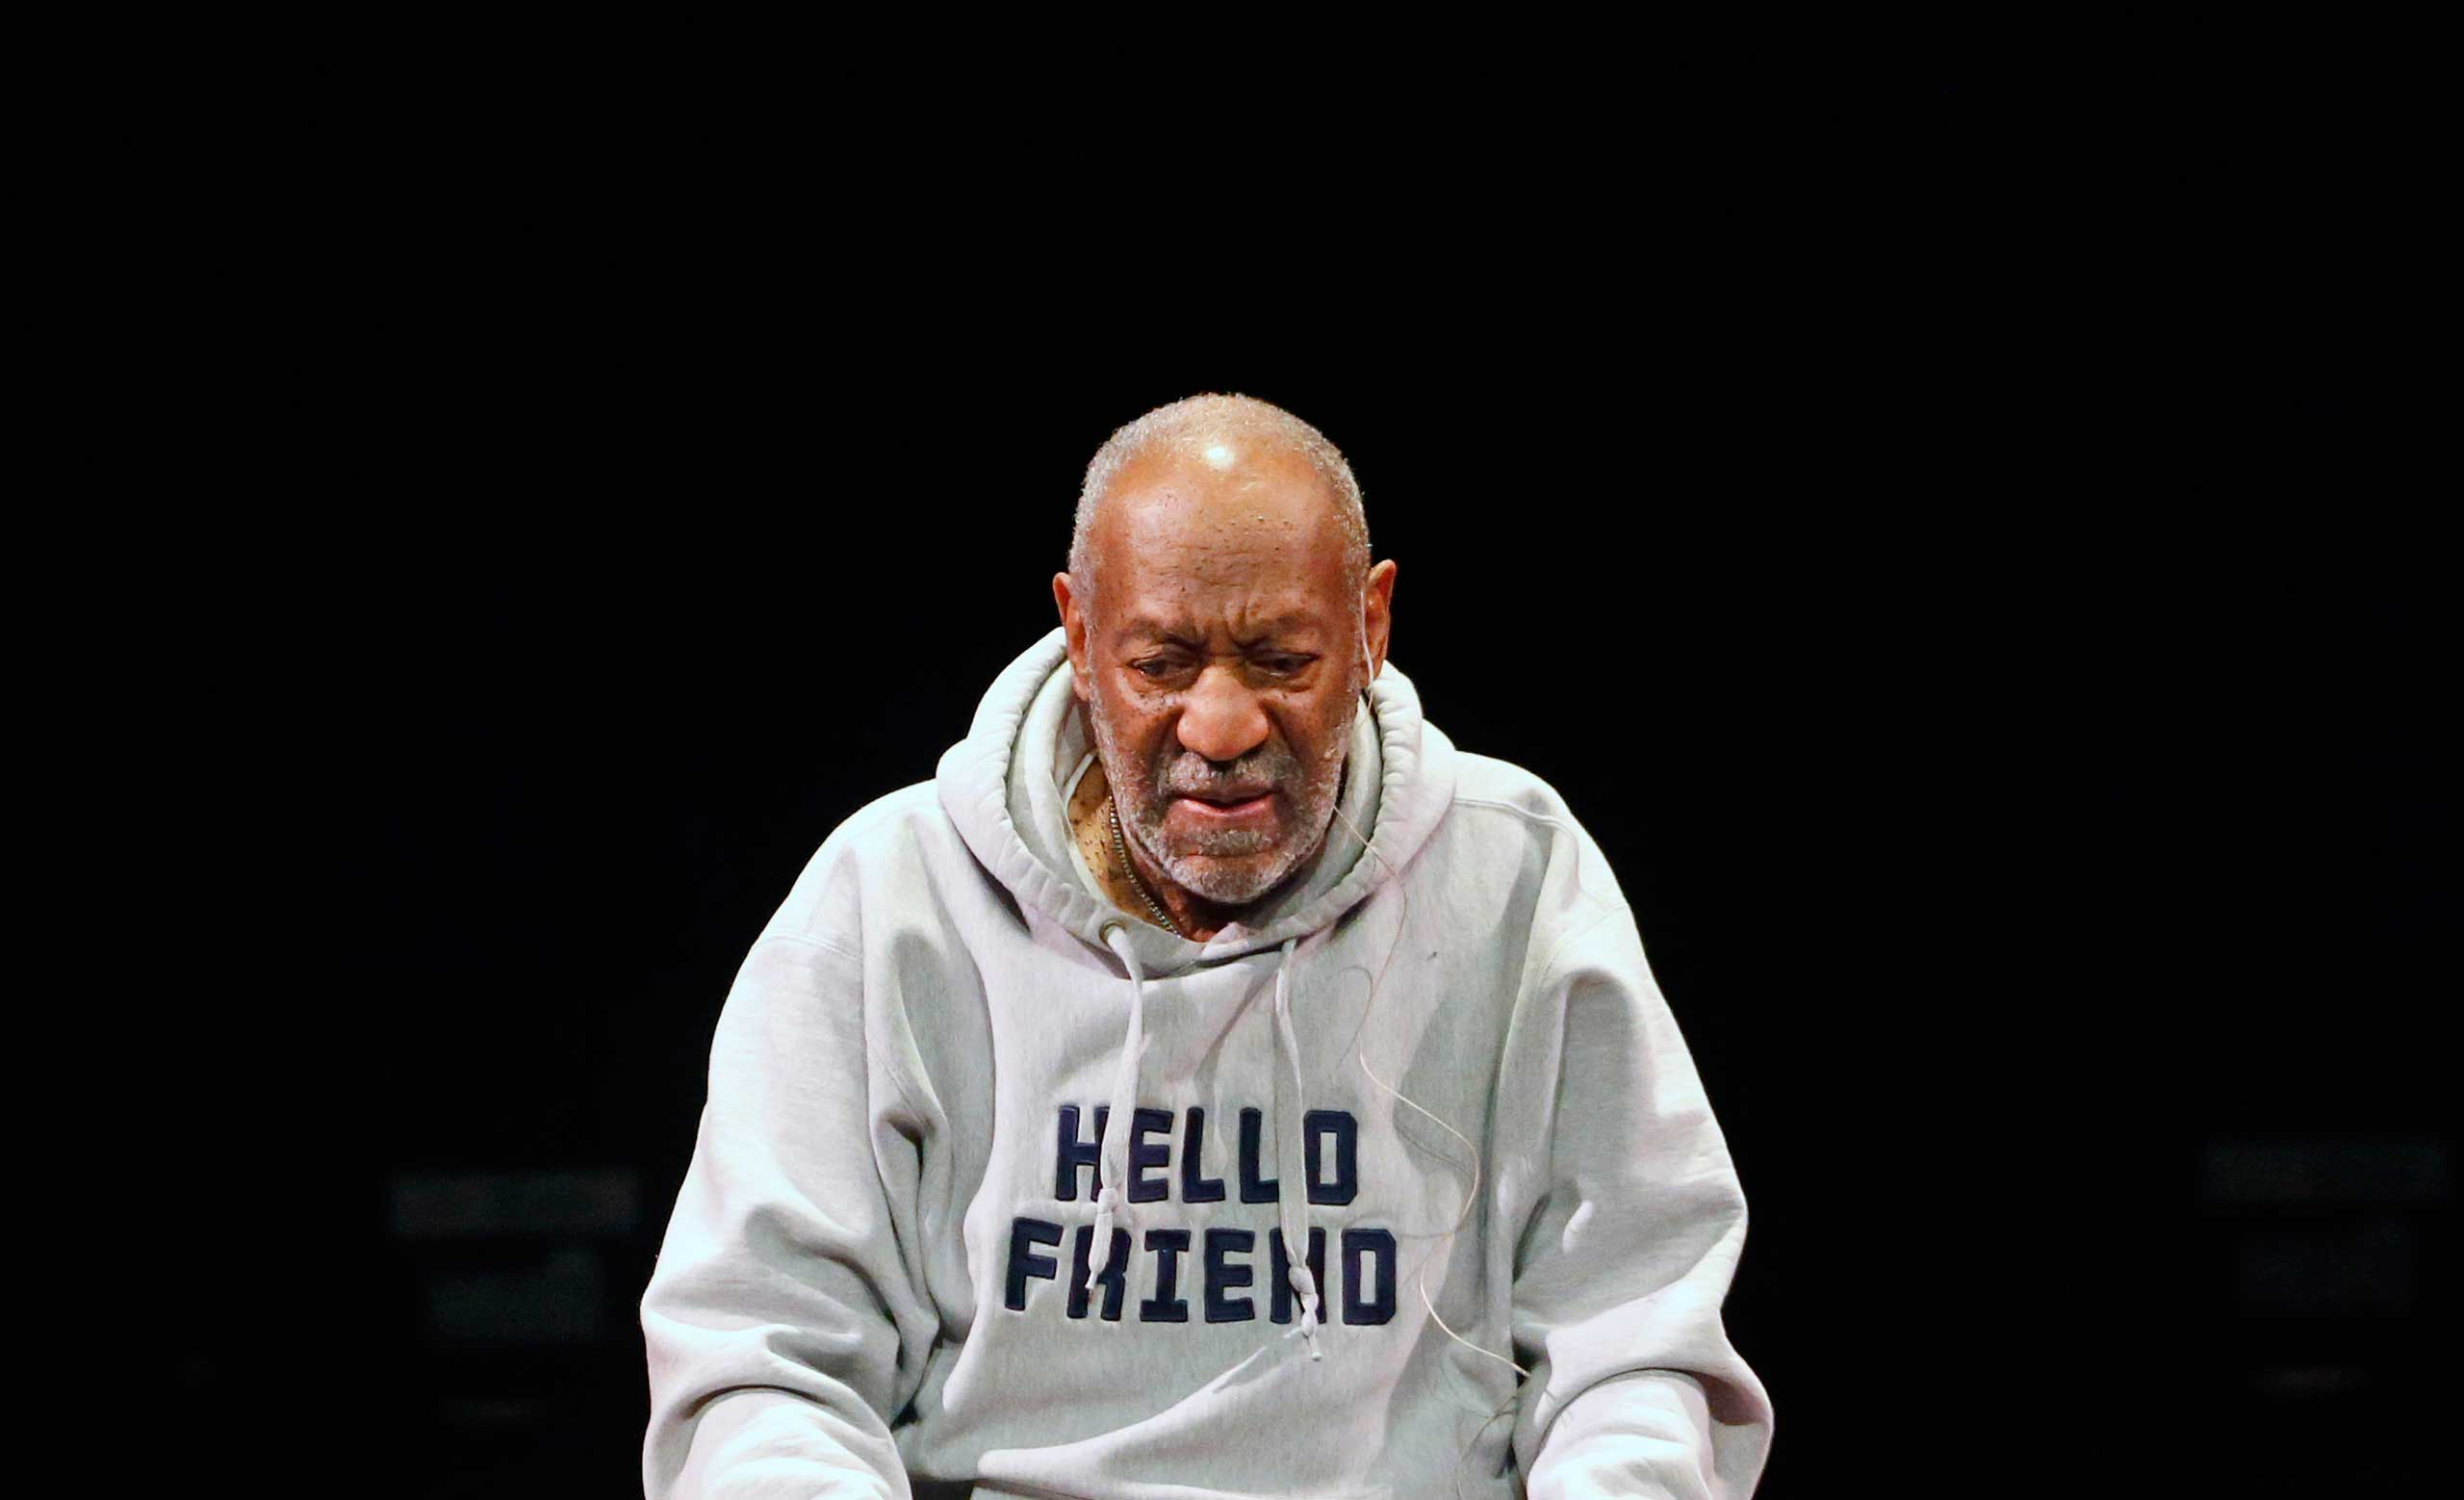 Comedian Bill Cosby performs at the Buell Theater in Denver, Jan. 17, 2015